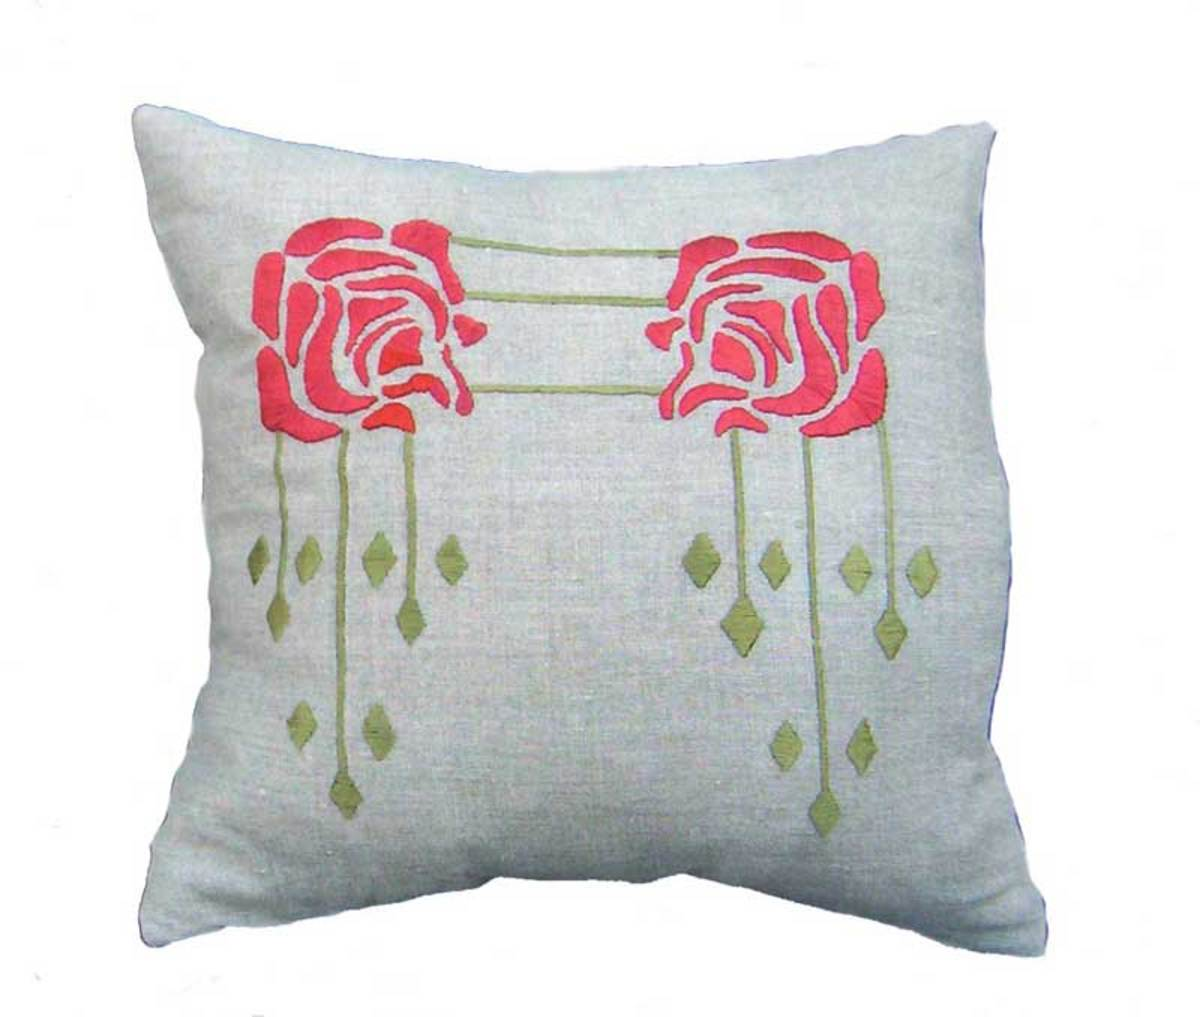 Rose is an embroidered pattern.